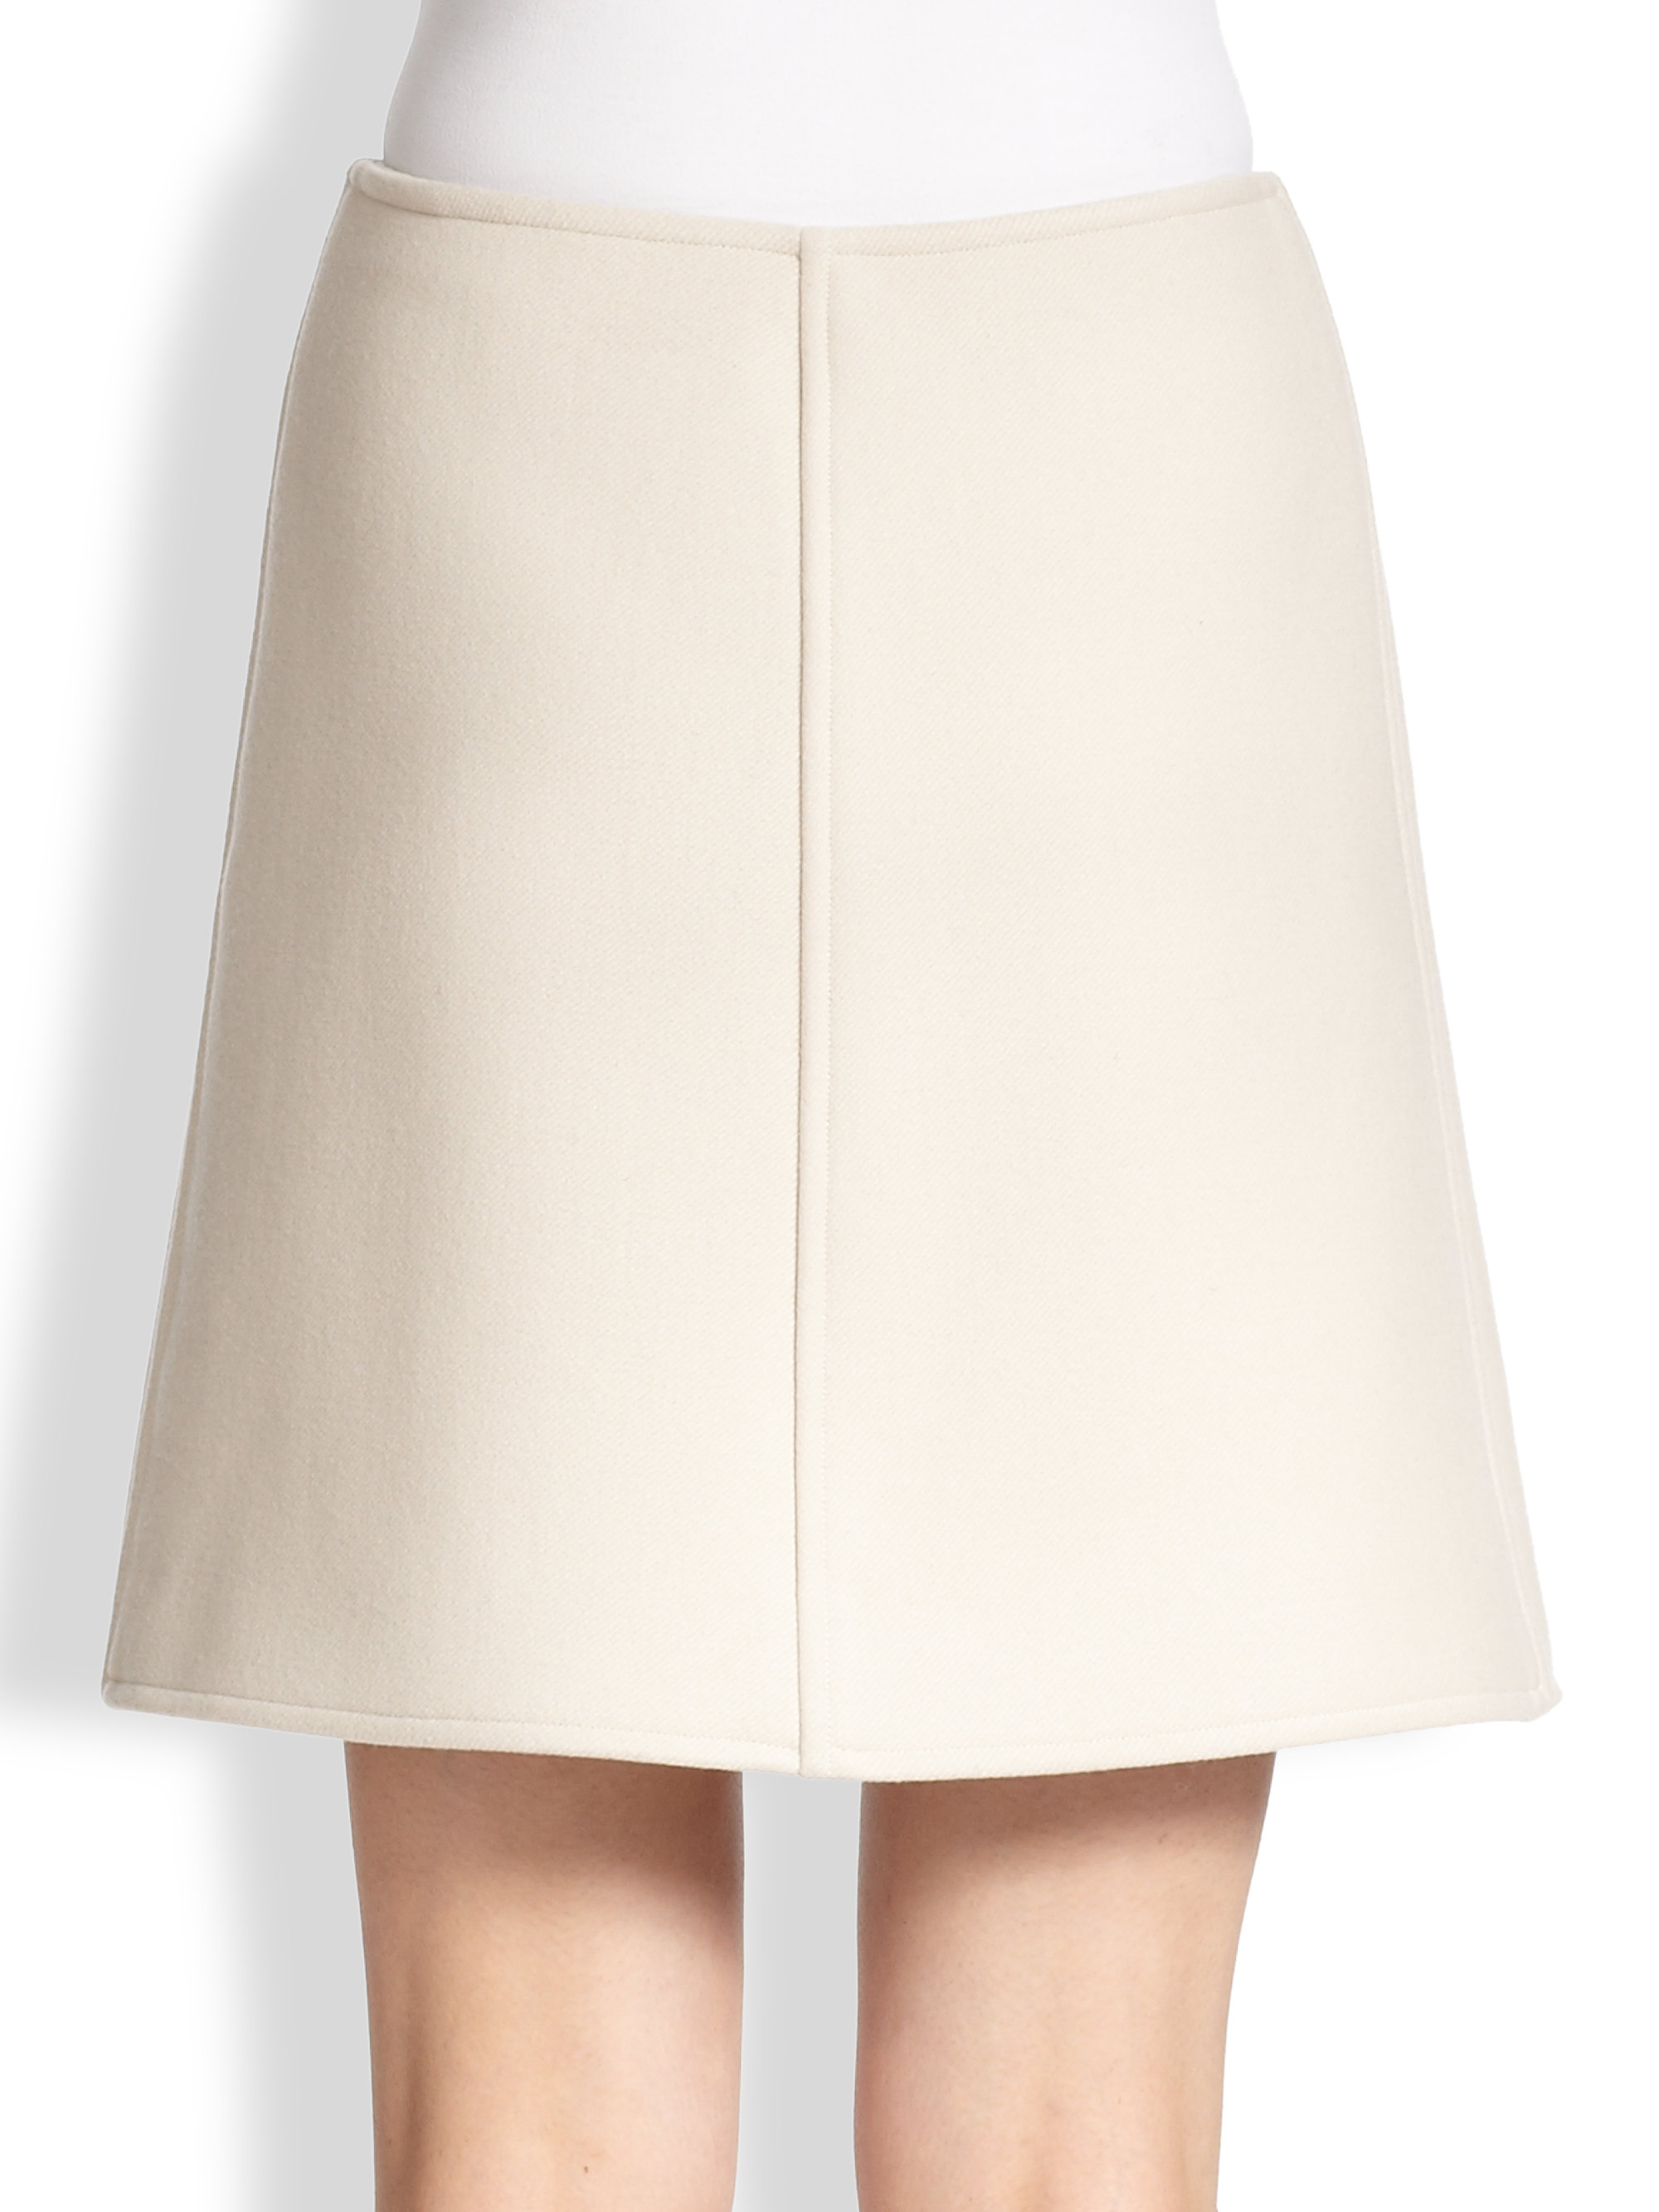 Courreges Wool Zip-Front A-Line Skirt in Natural | Lyst